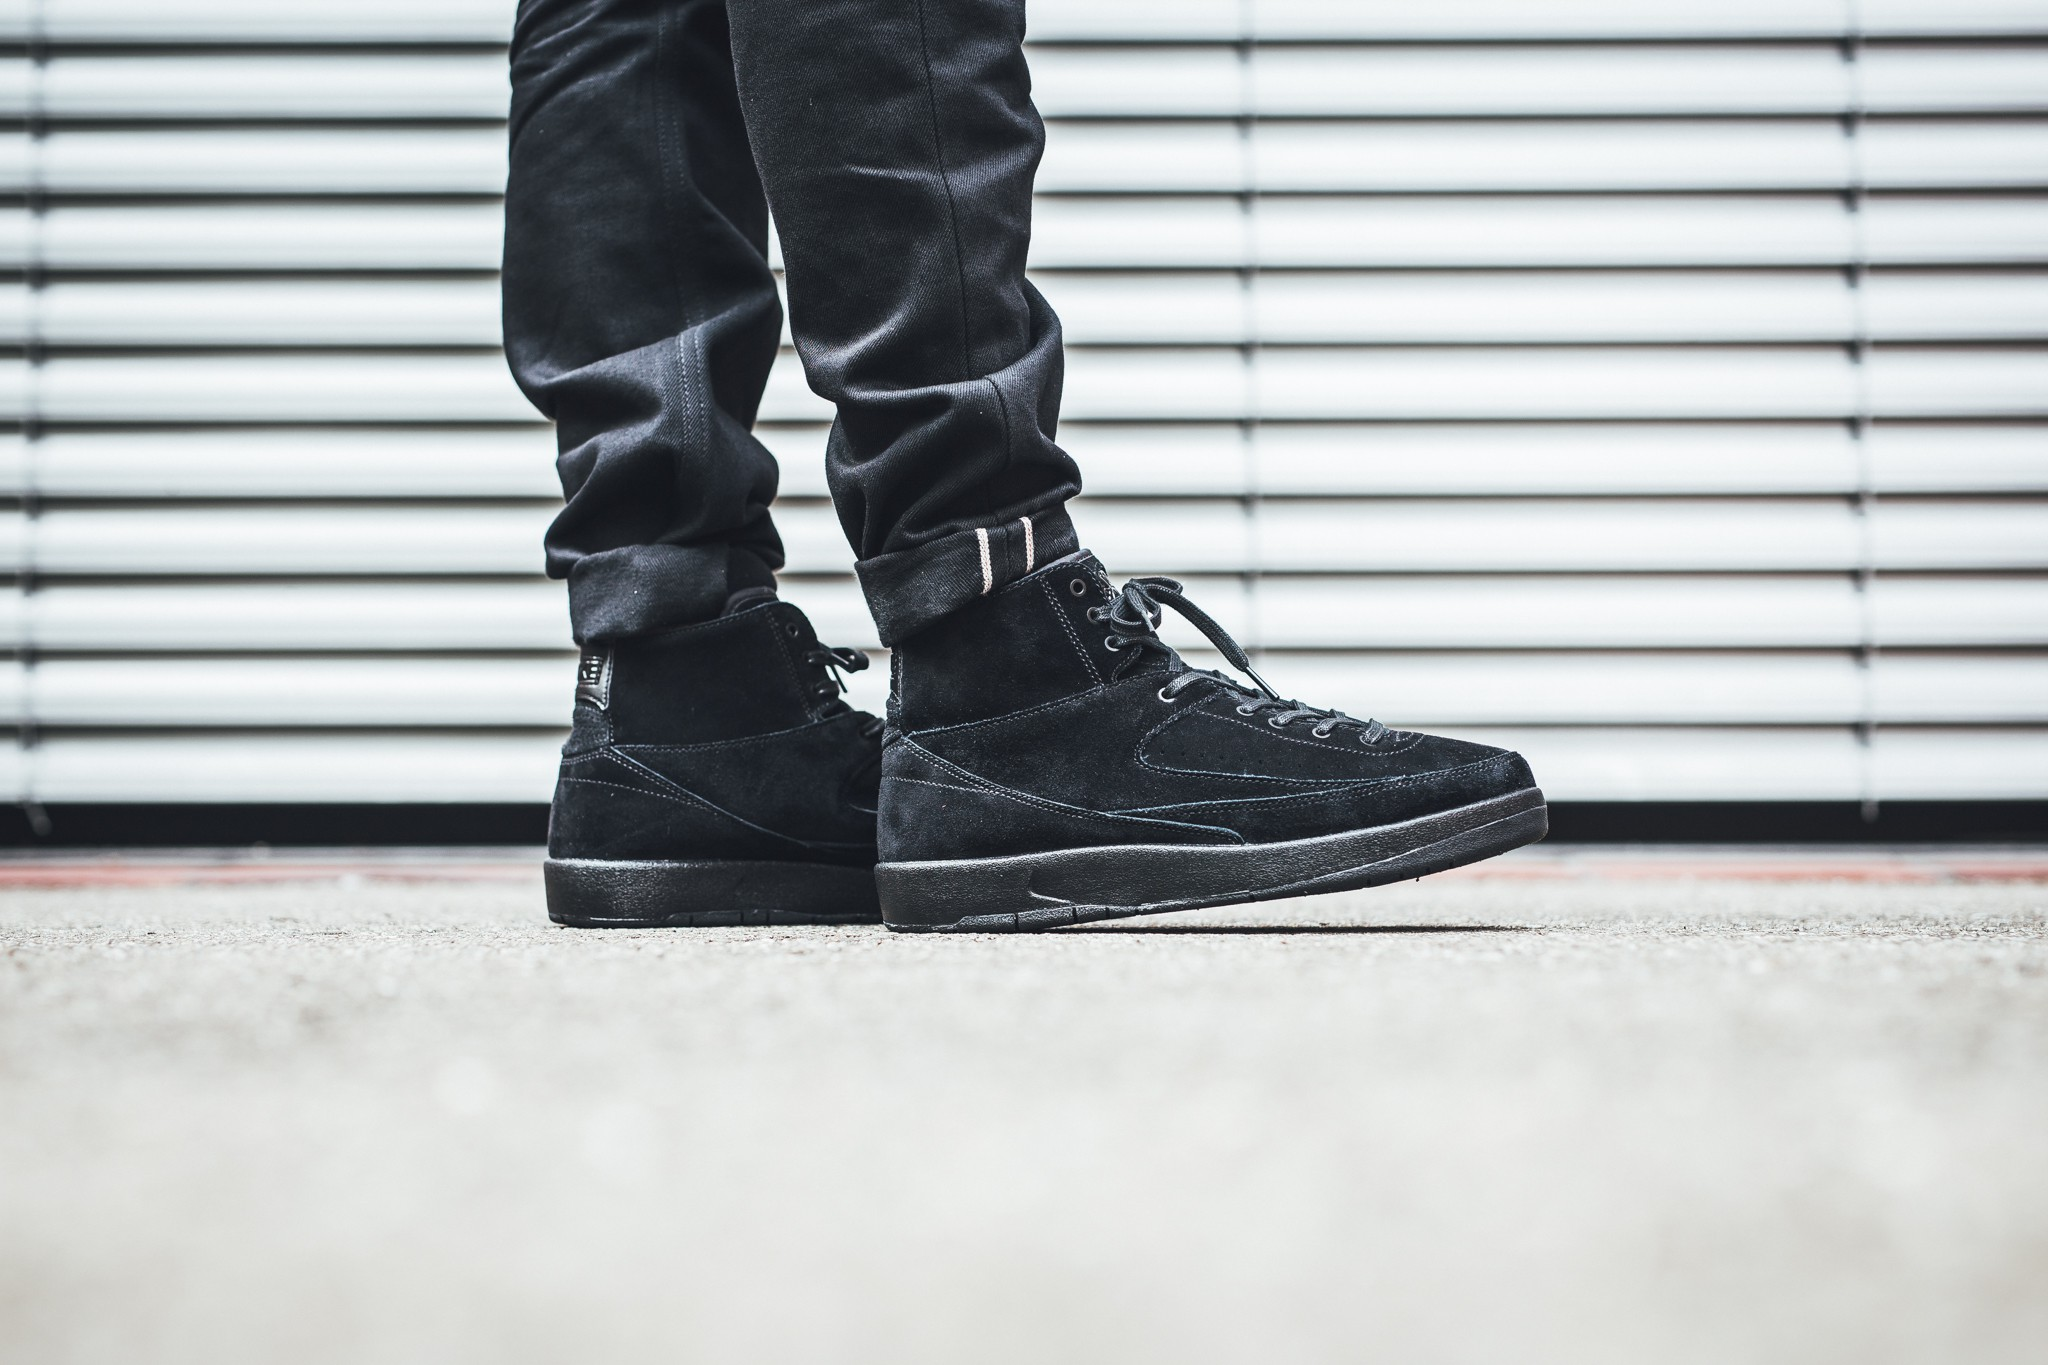 super popular 3eb9f c11c0 Release Reminder: Air Jordan 2 Decon Triple Black ...